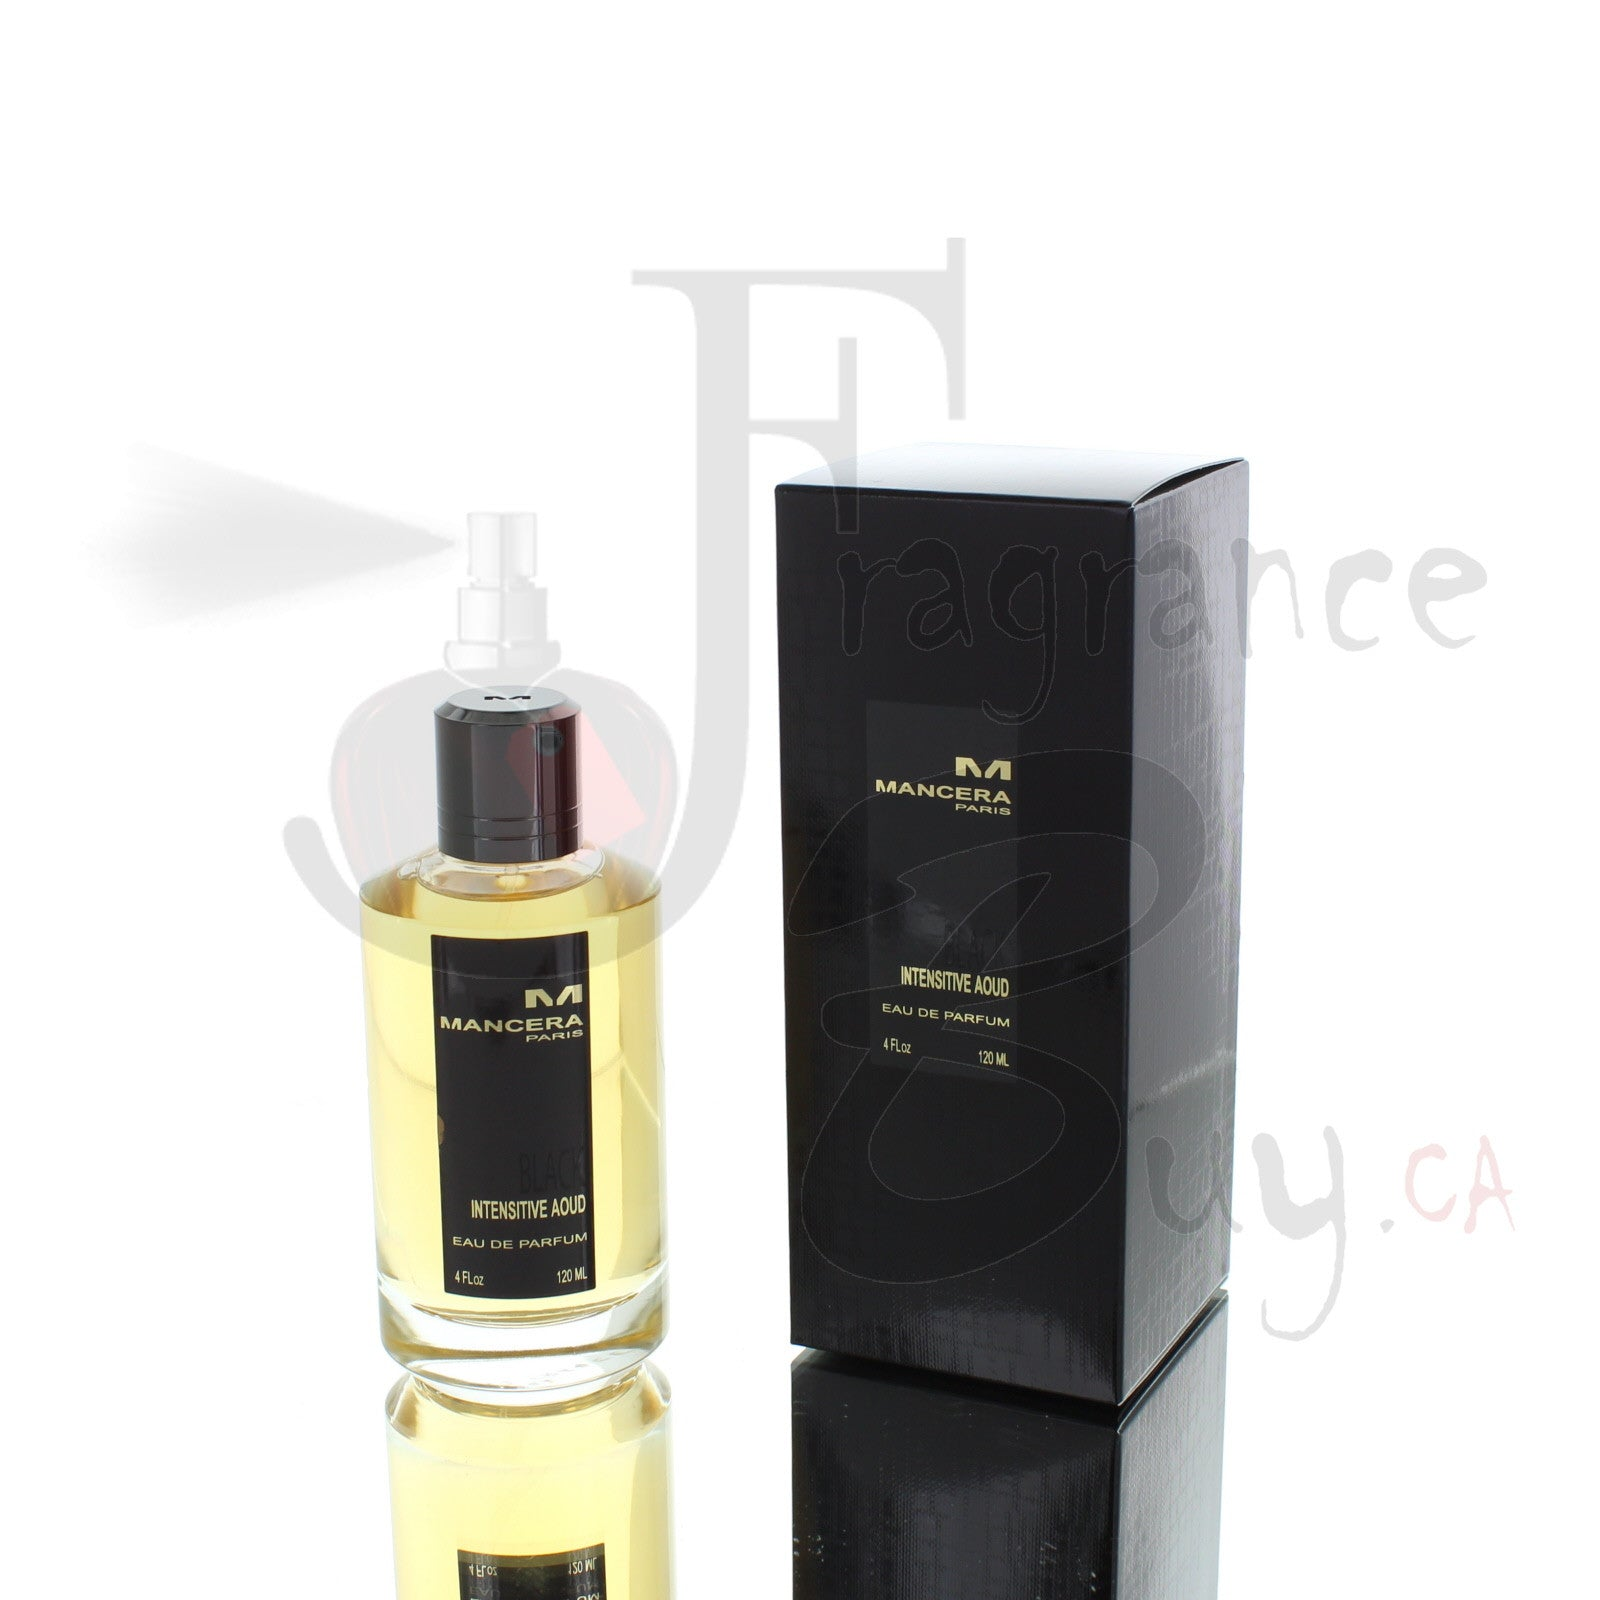 Mancera Black Intensitive Aoud For Man/Woman